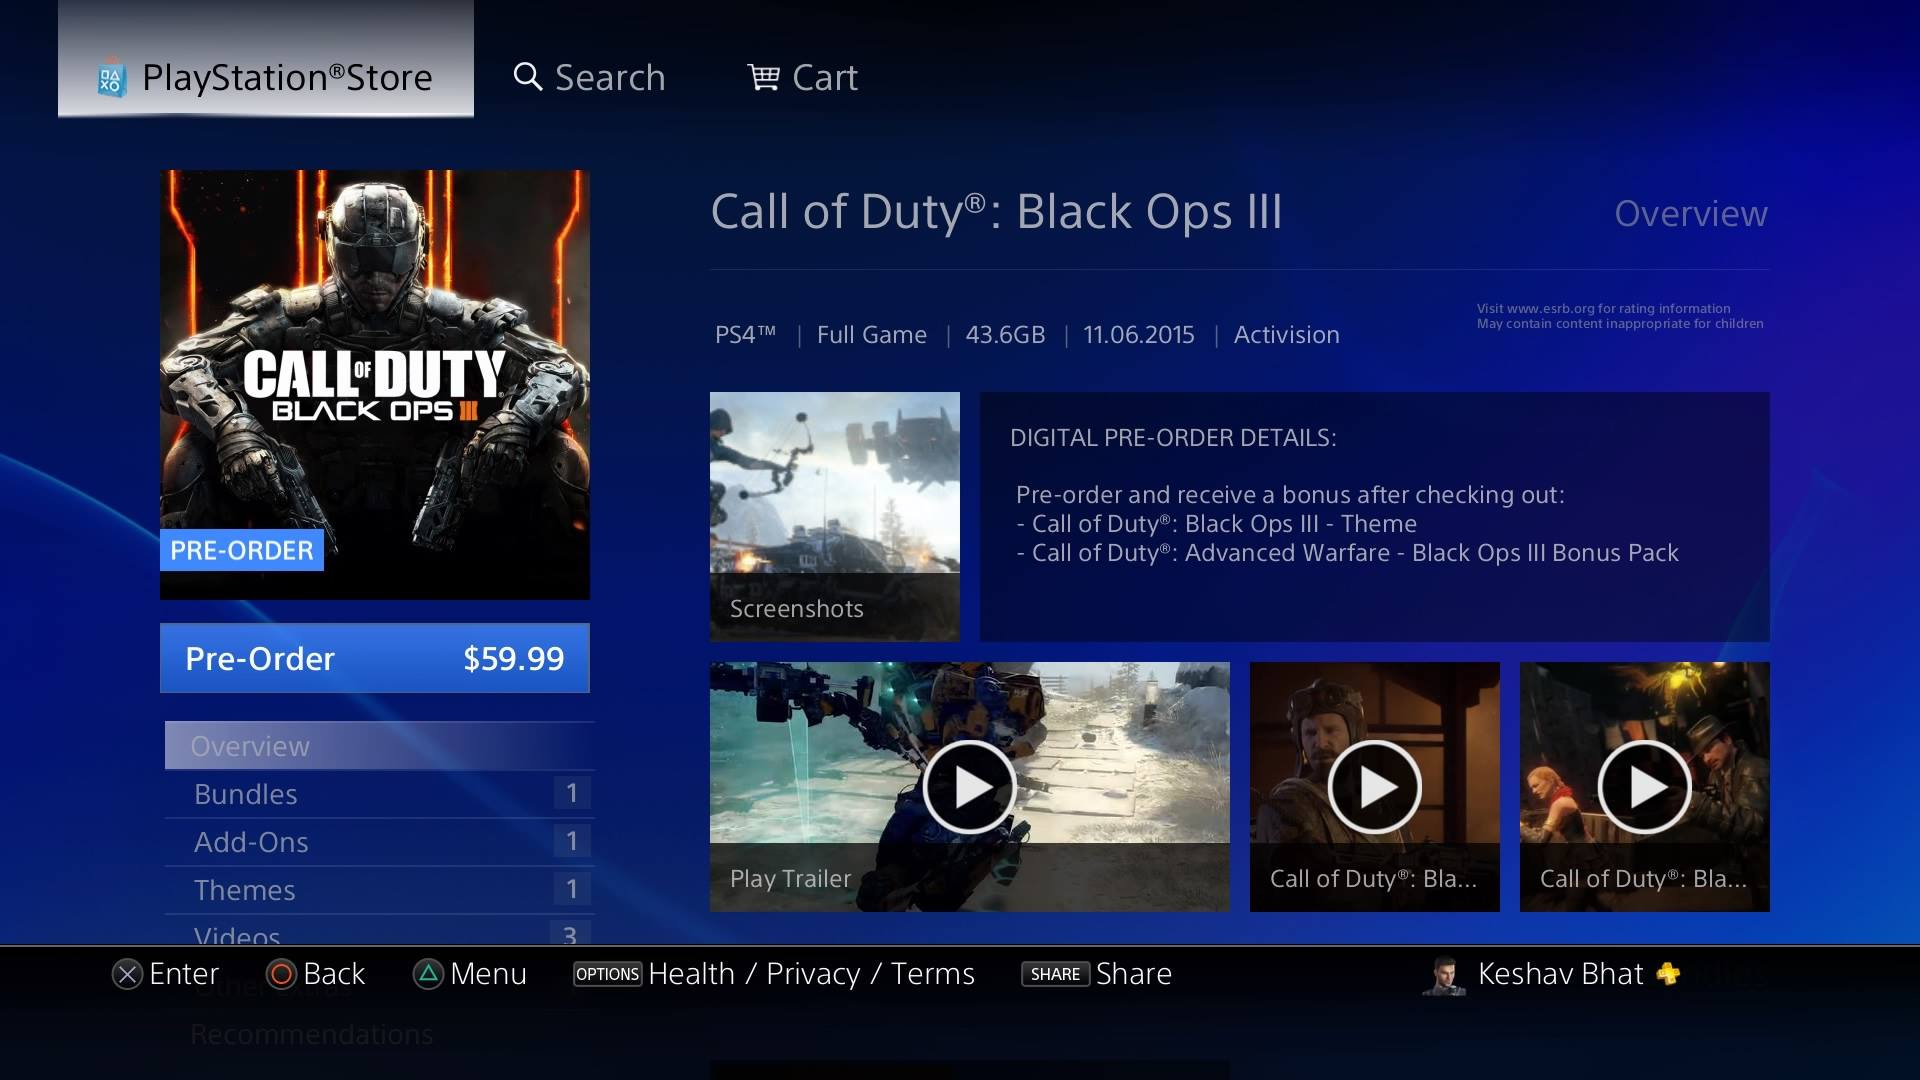 Black Ops 3 On Playstation 4 Requires 43 6gb Of Space Update